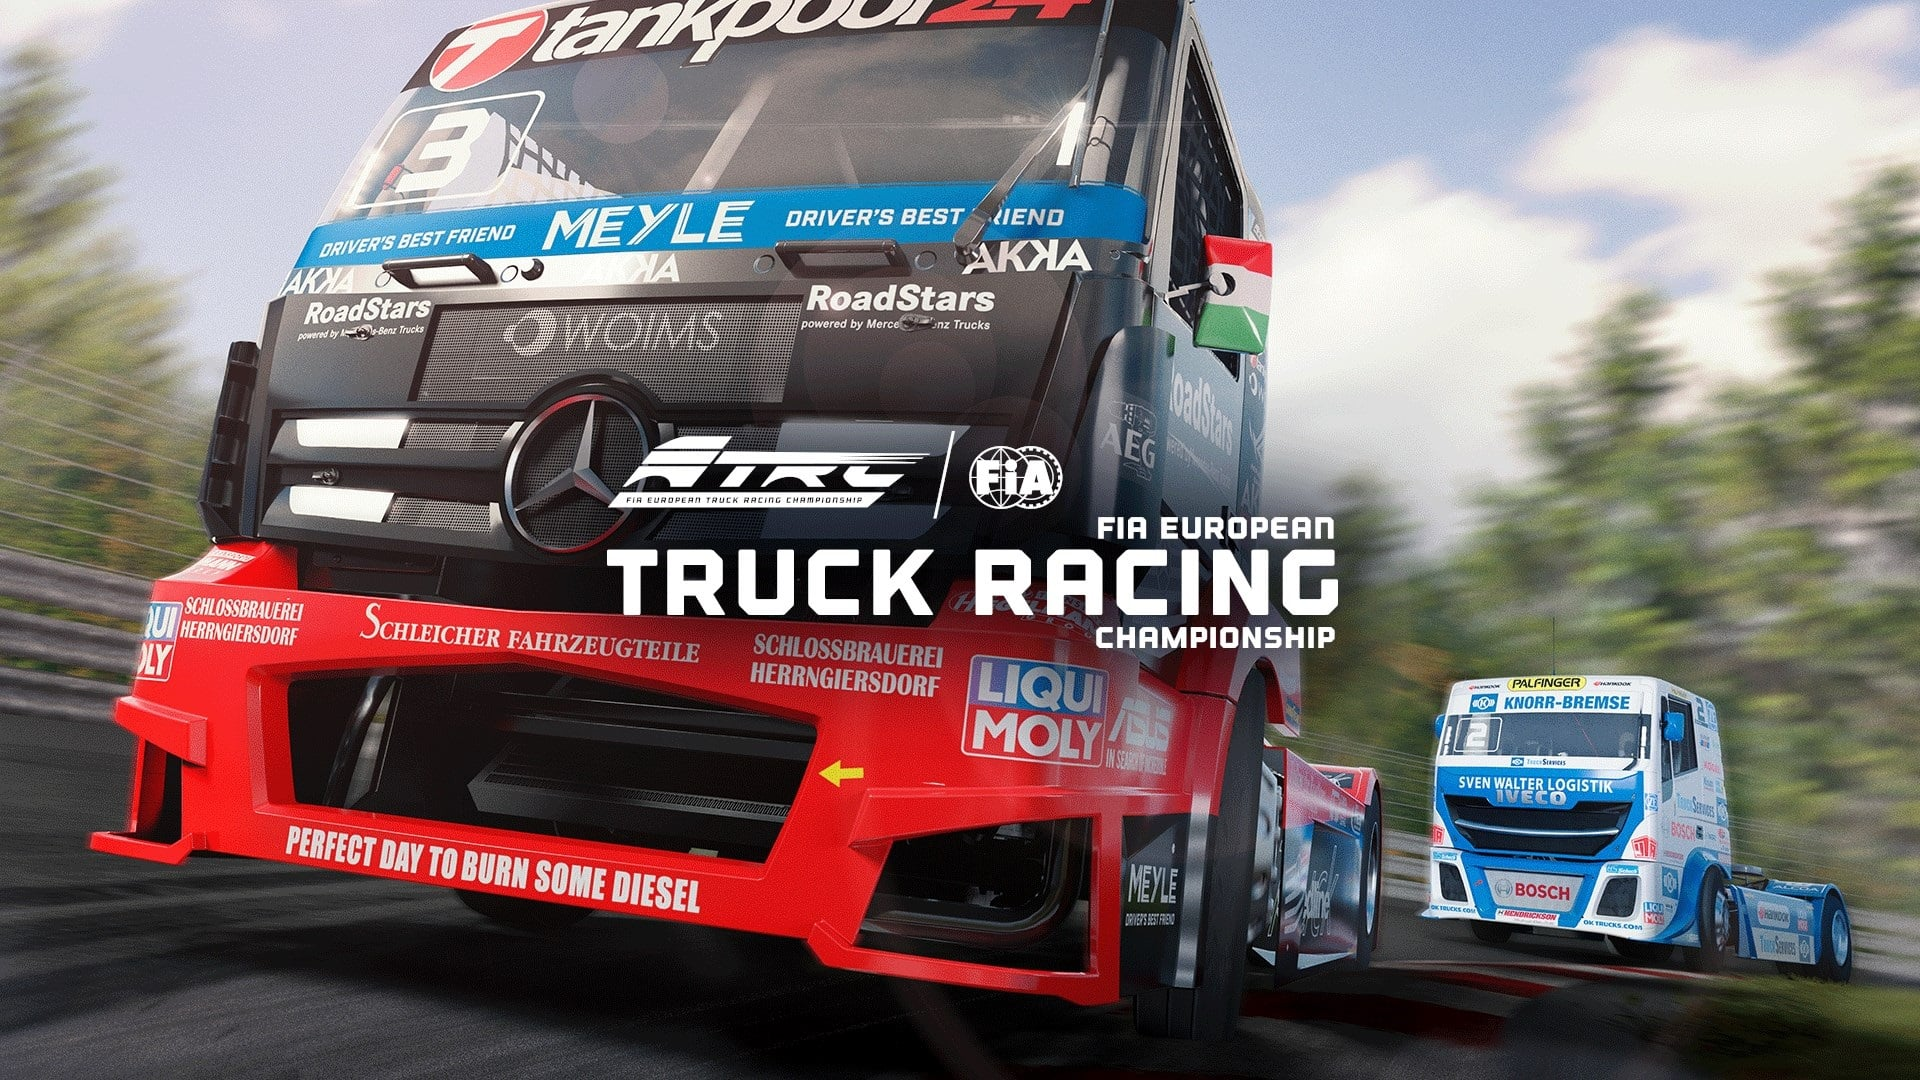 fia truck racing championship hd wallpaper 68387